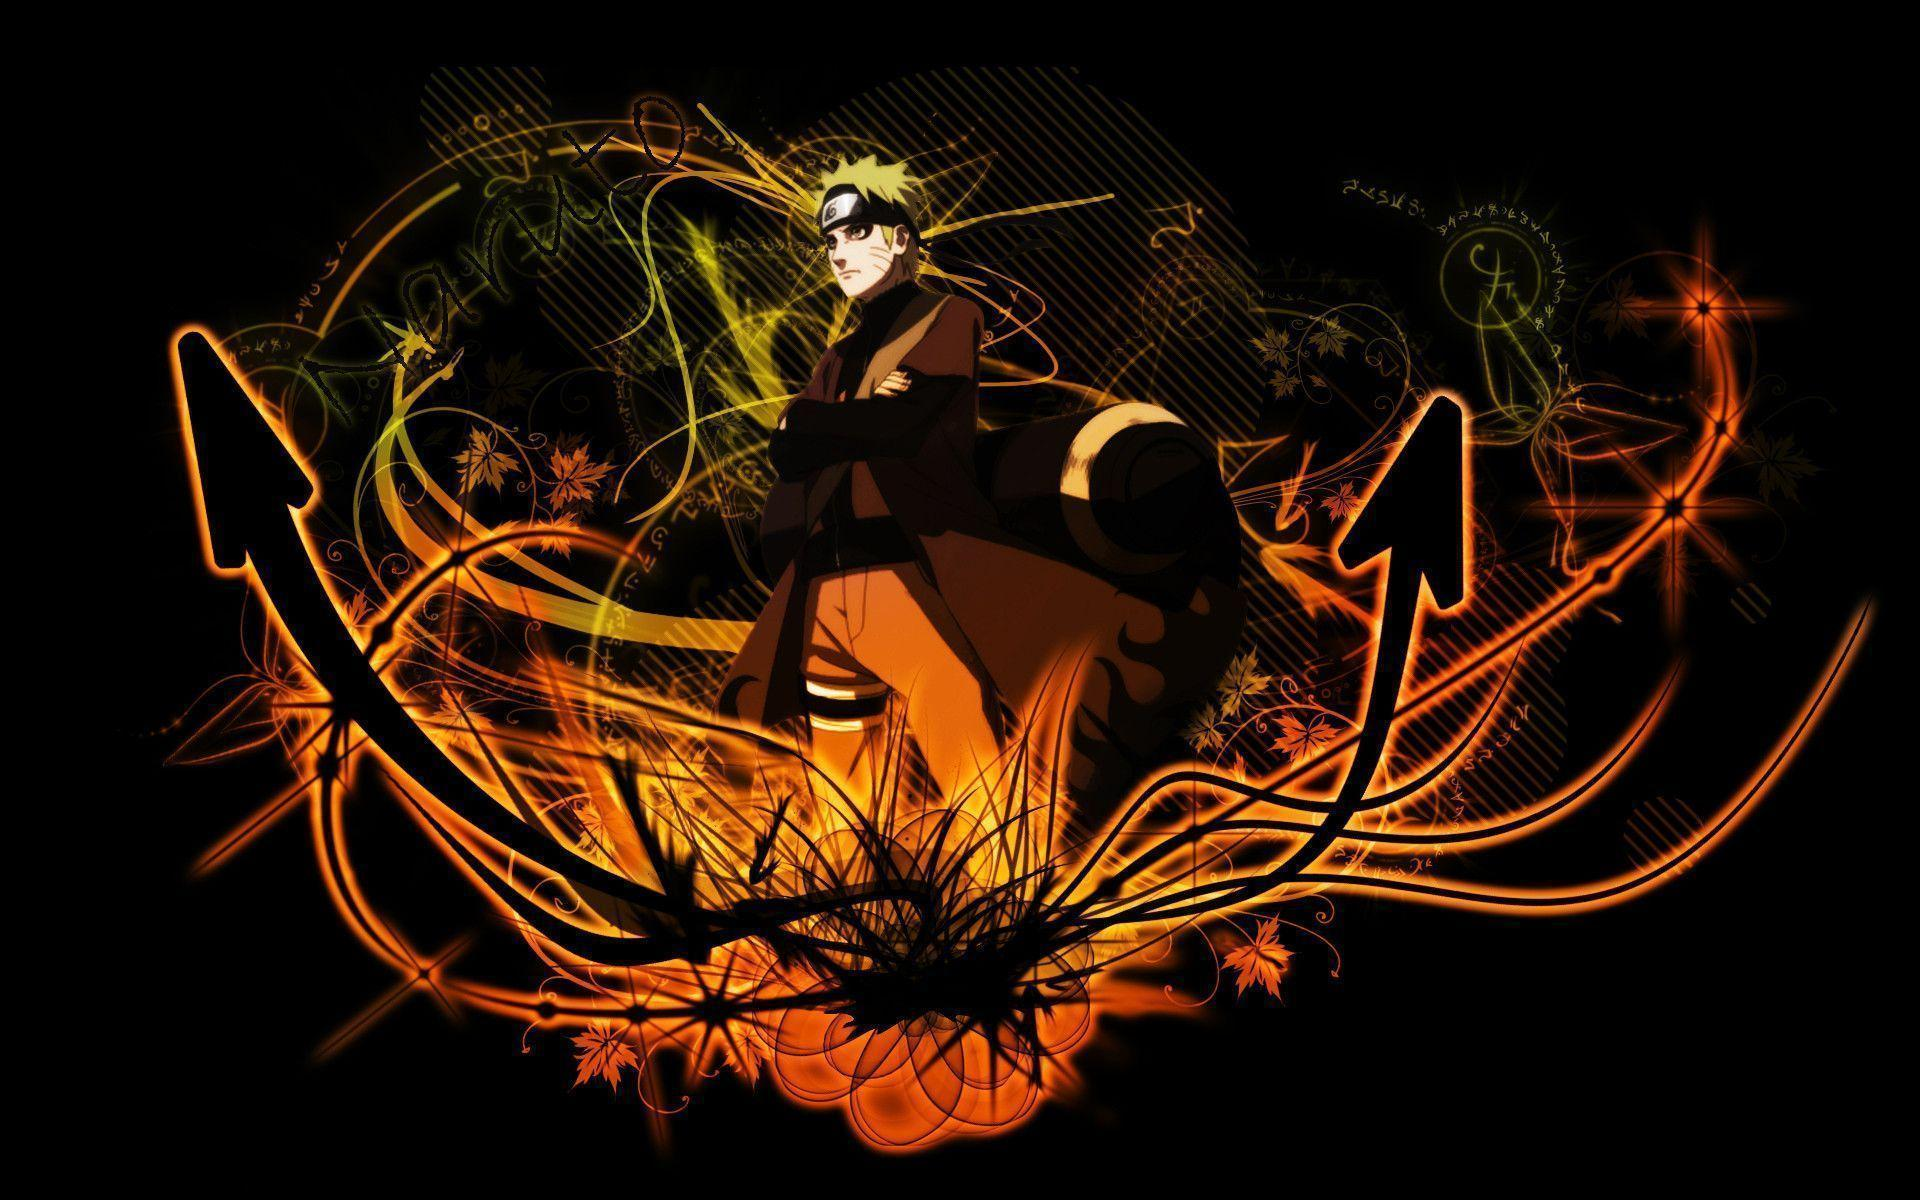 naruto sage mode widescreen desktop wallpaper hd wallpapers